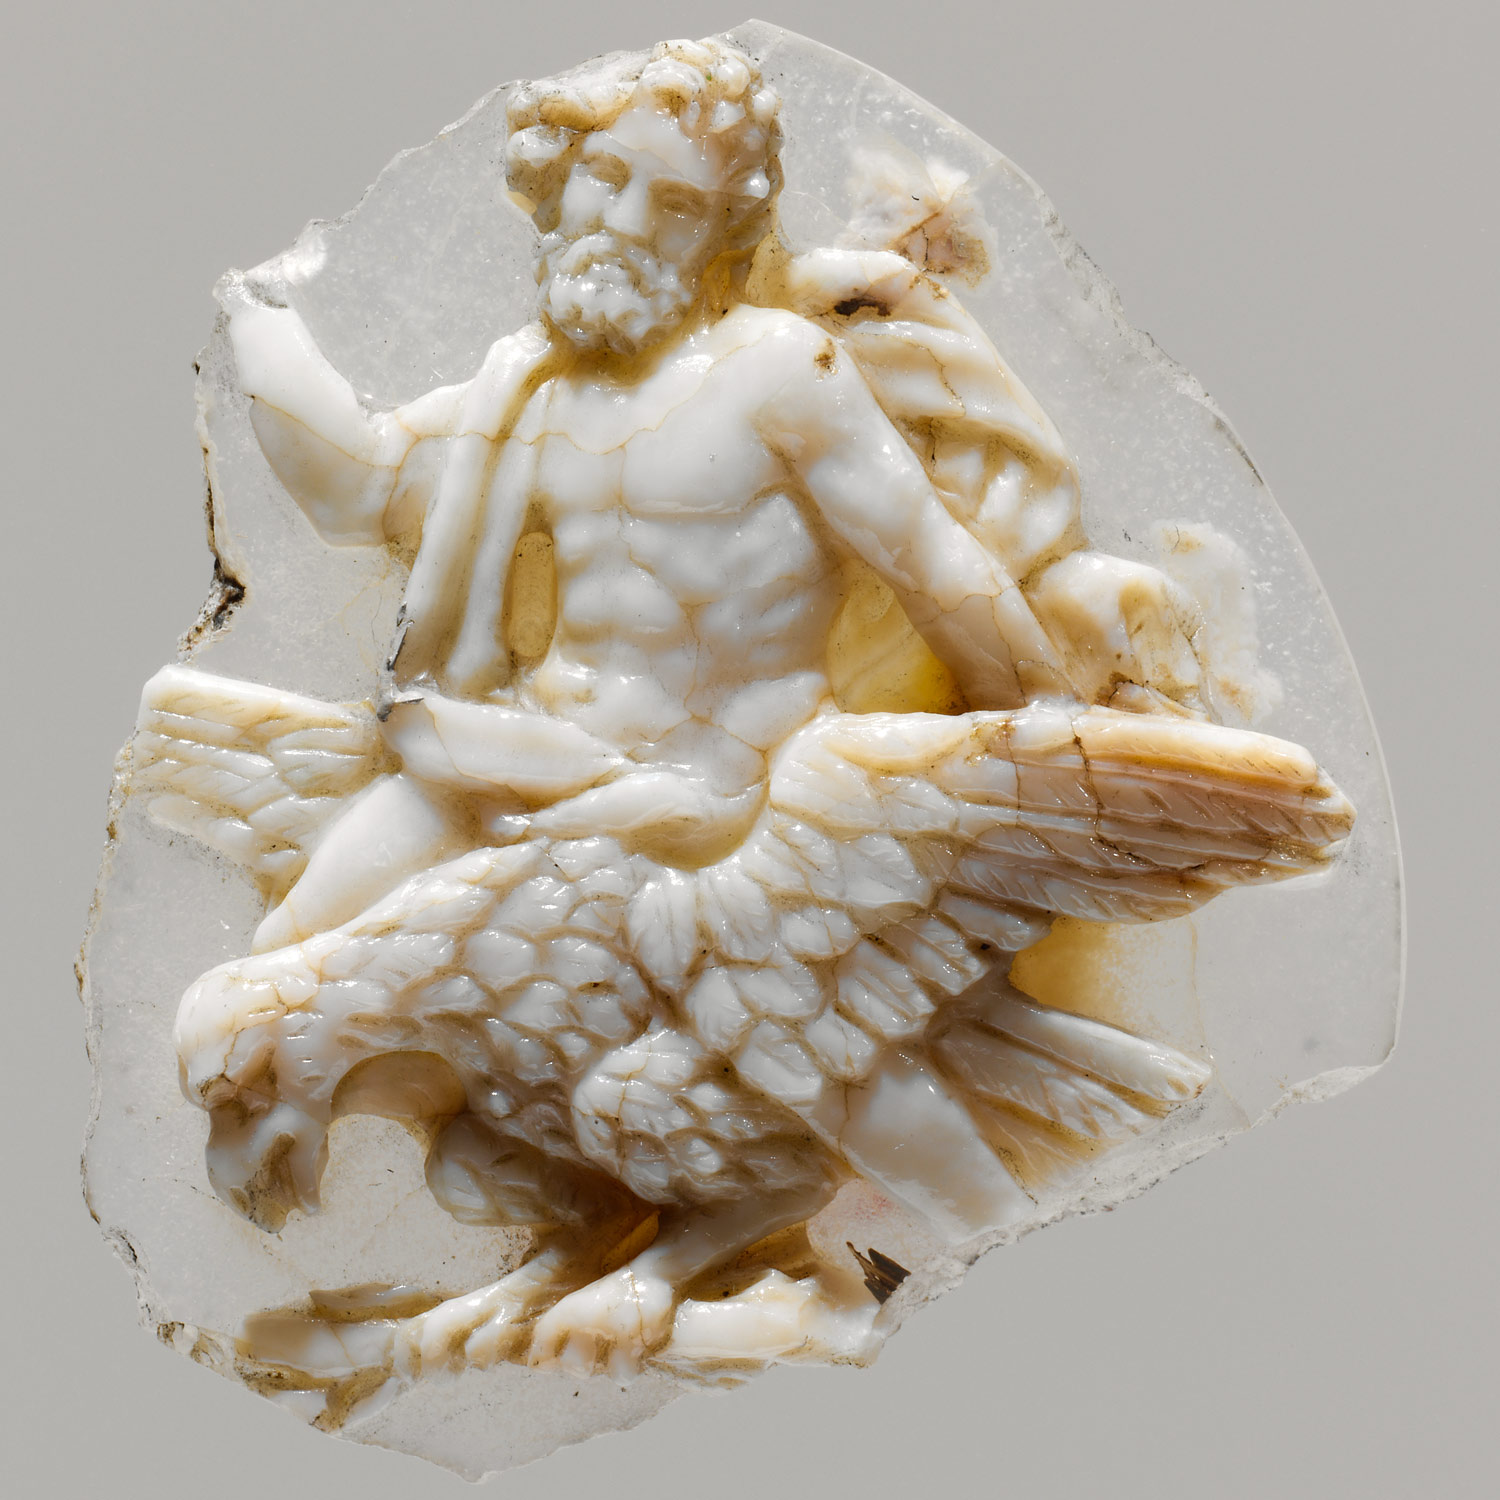 luxury arts of rome essay heilbrunn timeline of art history sardonyx cameo fragment jupiter astride an eagle